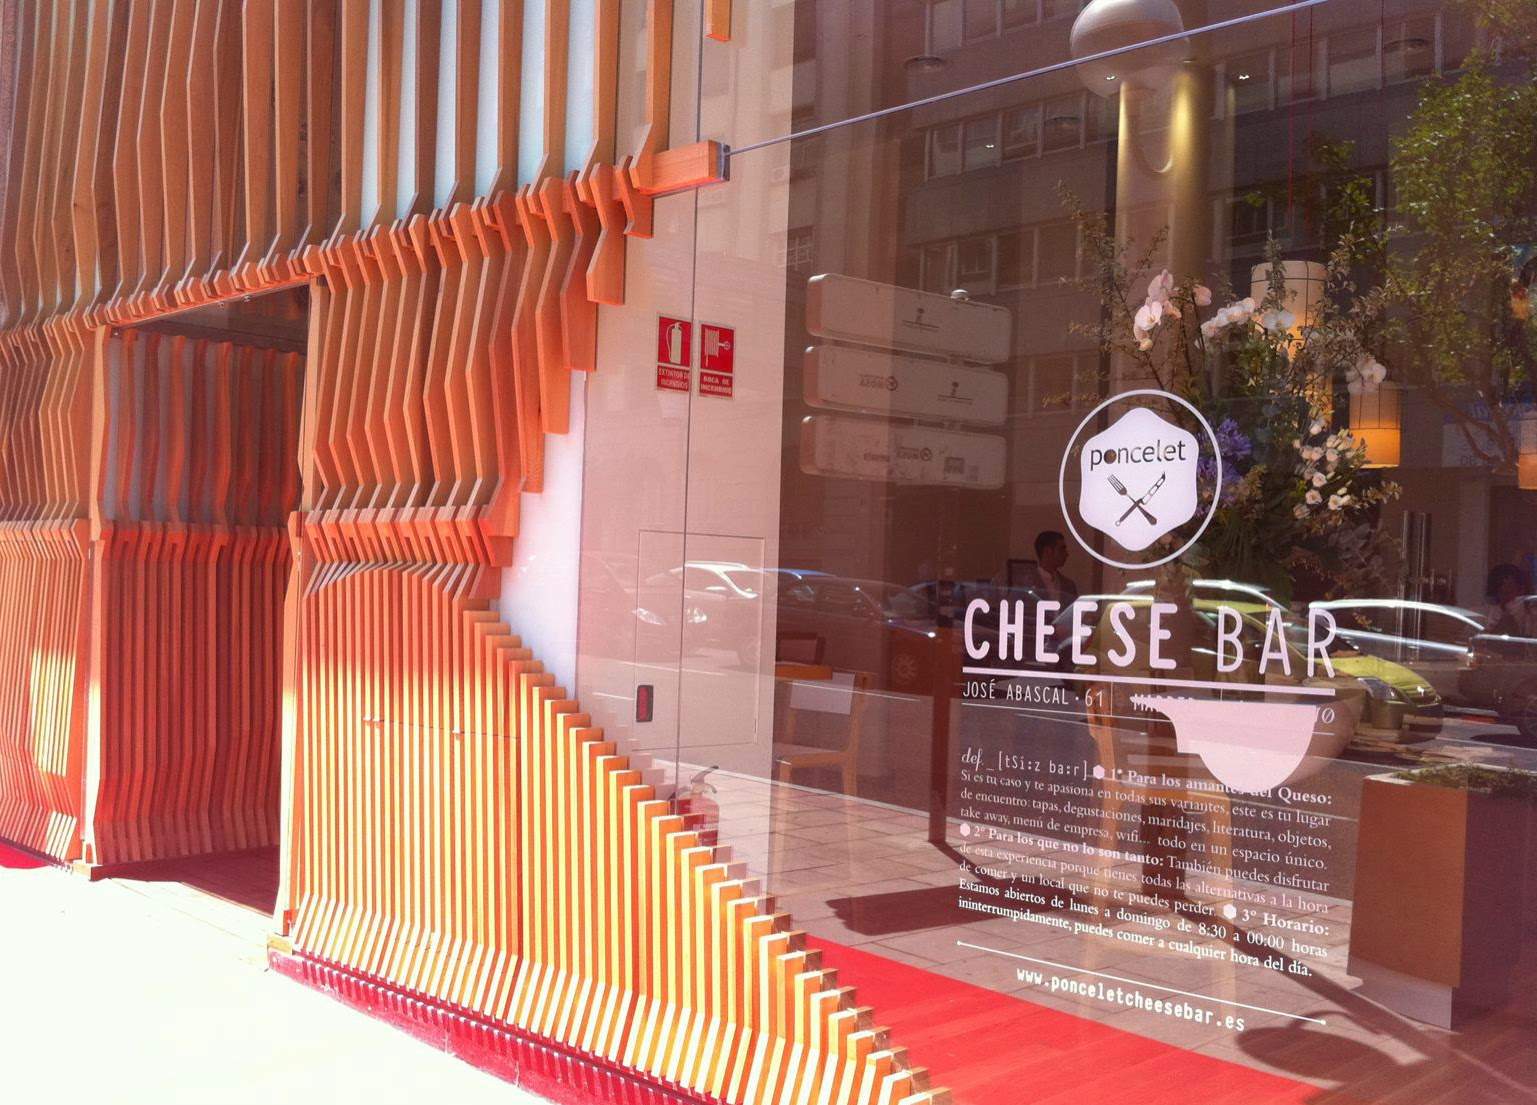 cheese bar poncelet gastrobar del queso